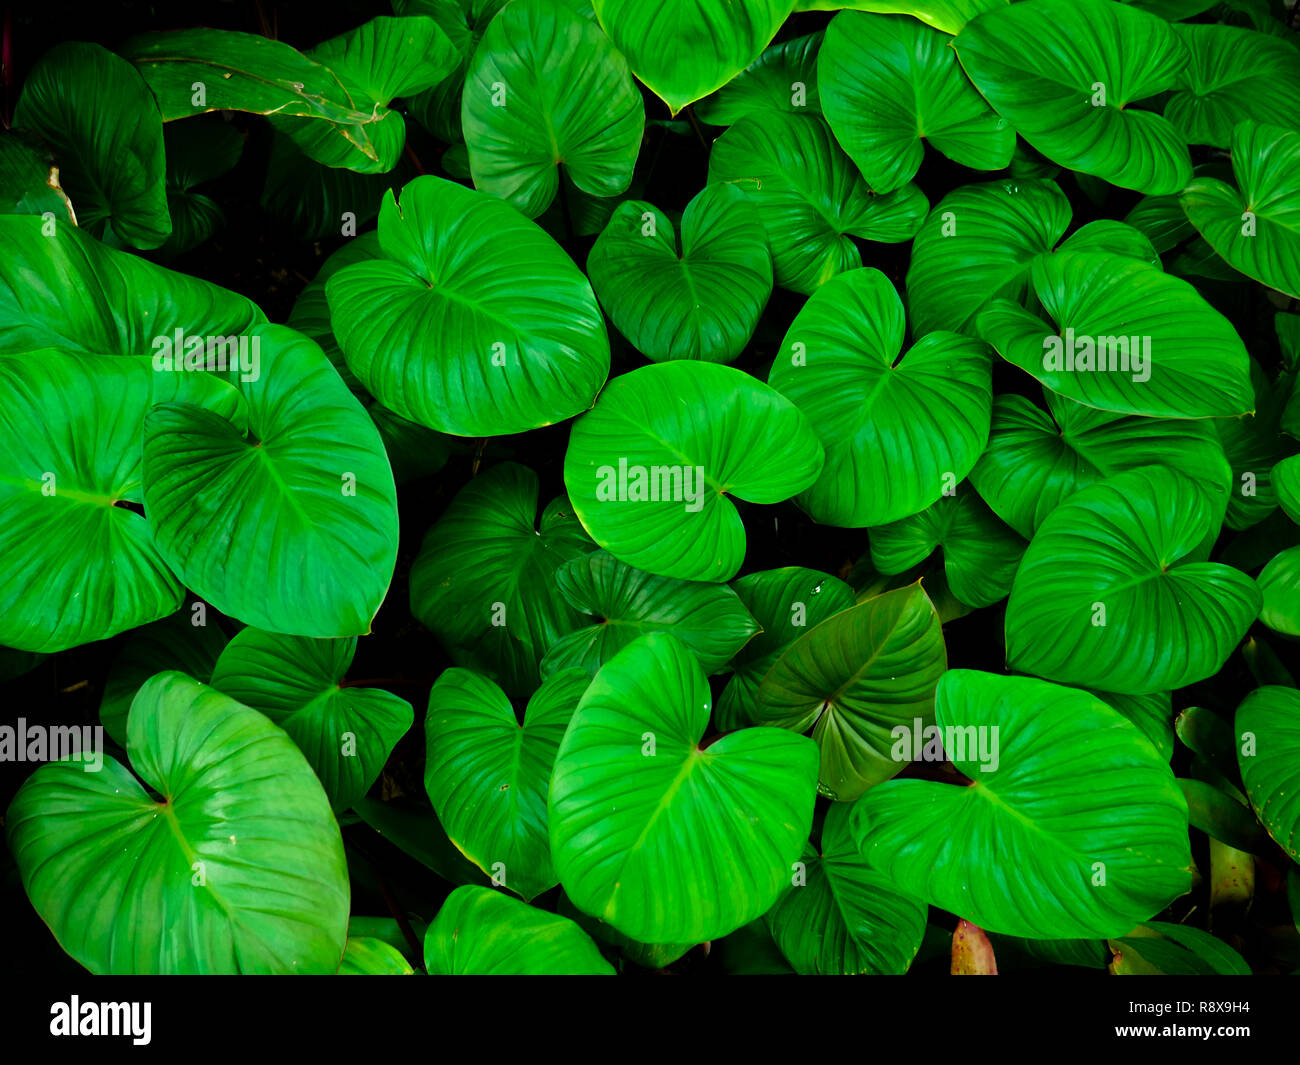 Background Pattern Of Tropical Dark Green Leaves Nature Background Concept Stock Photo Alamy I use them to frame areas and create privacy. https www alamy com background pattern of tropical dark green leaves nature background concept image229230320 html